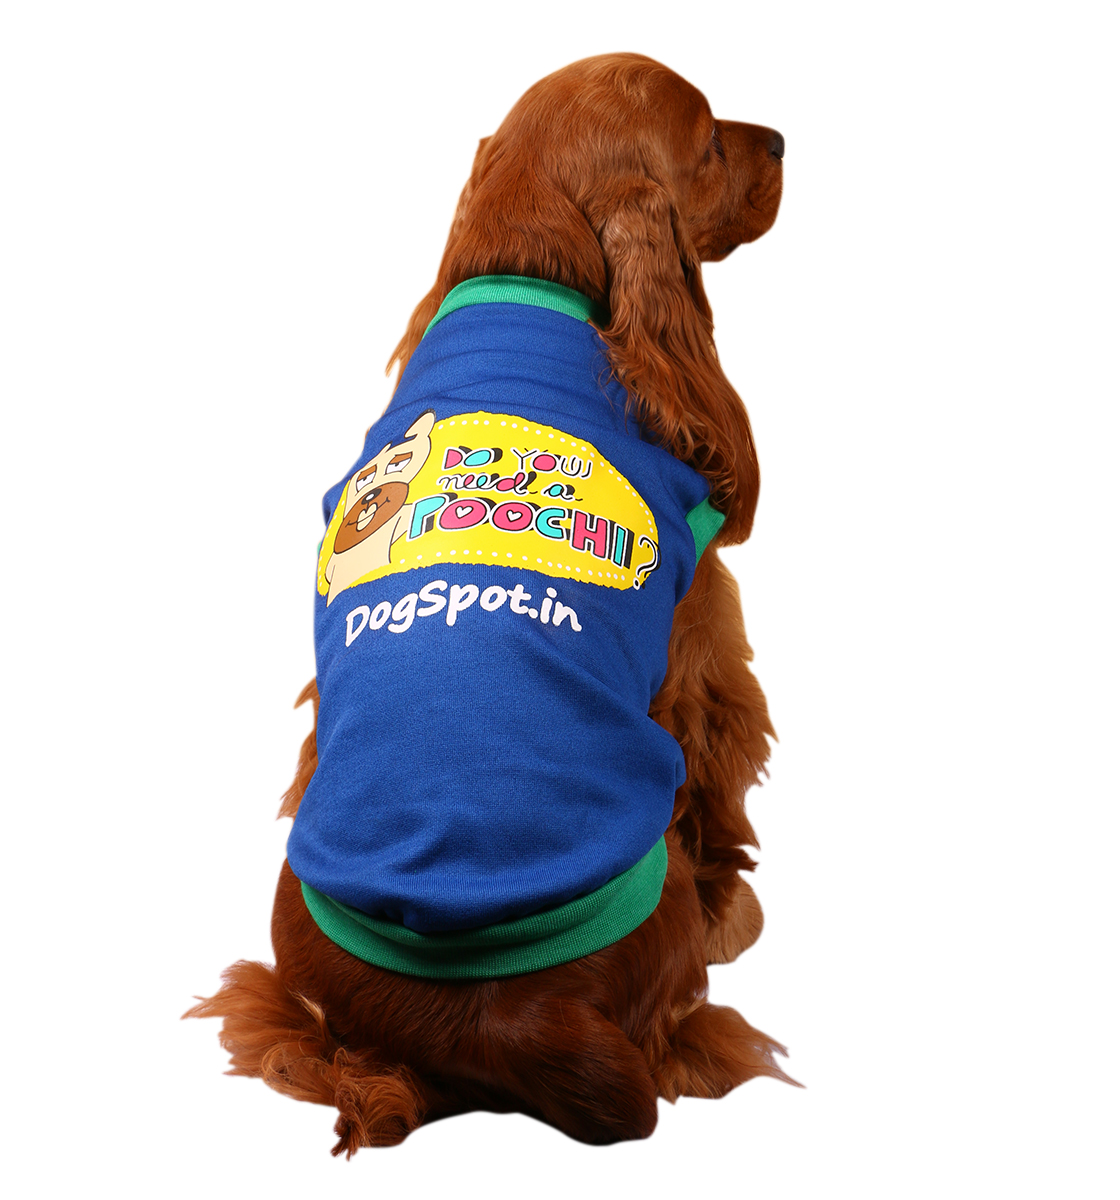 DogSpot Need A poochi Winter T-Shirt Size - 16